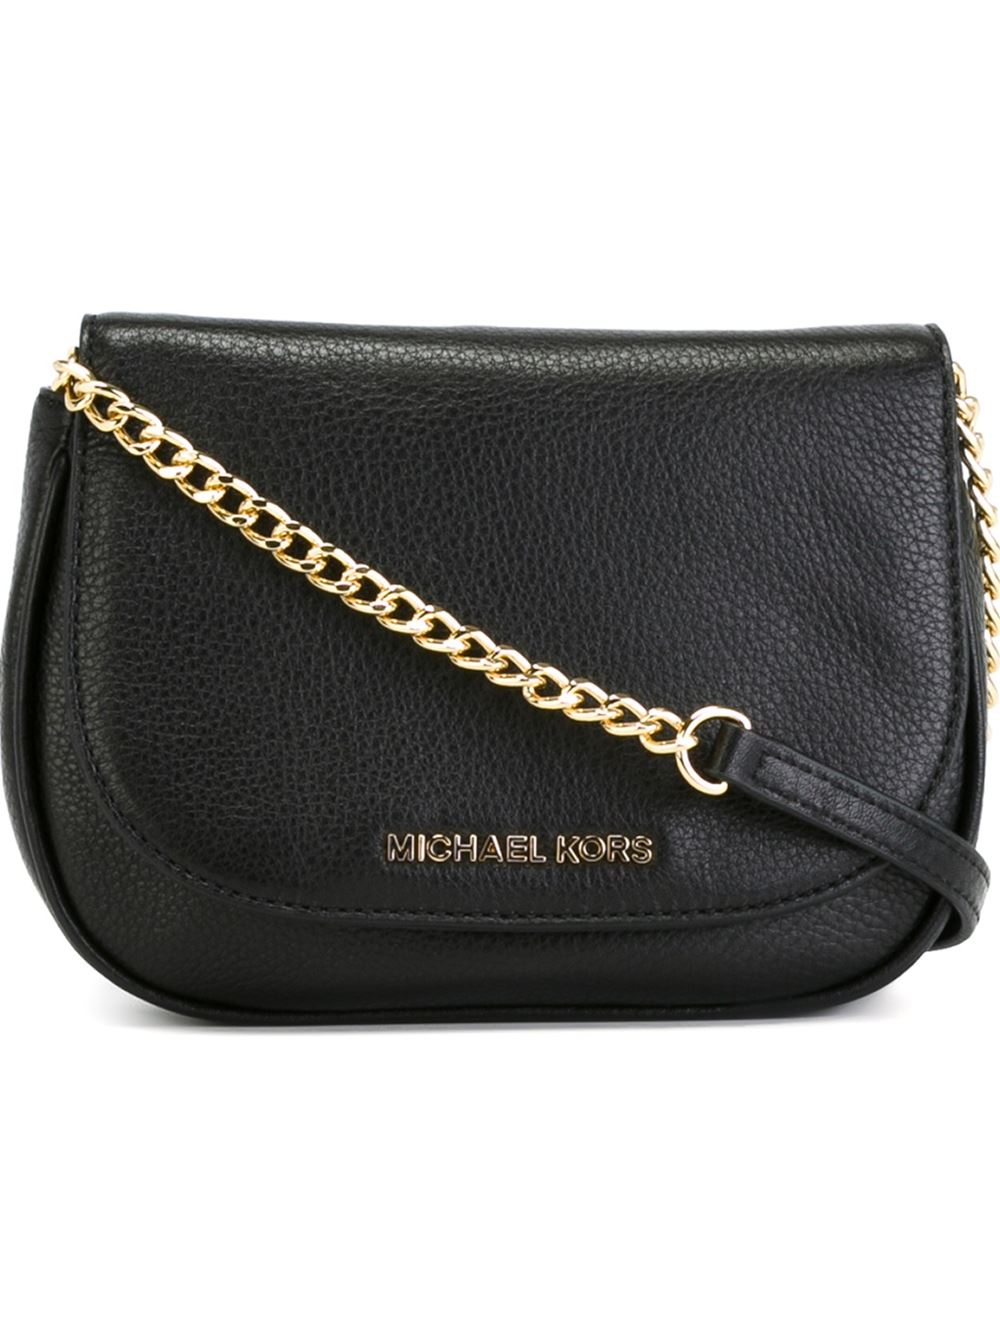 4ad63eba24ed Lyst - MICHAEL Michael Kors Small  bedford  Crossbody Bag in Black